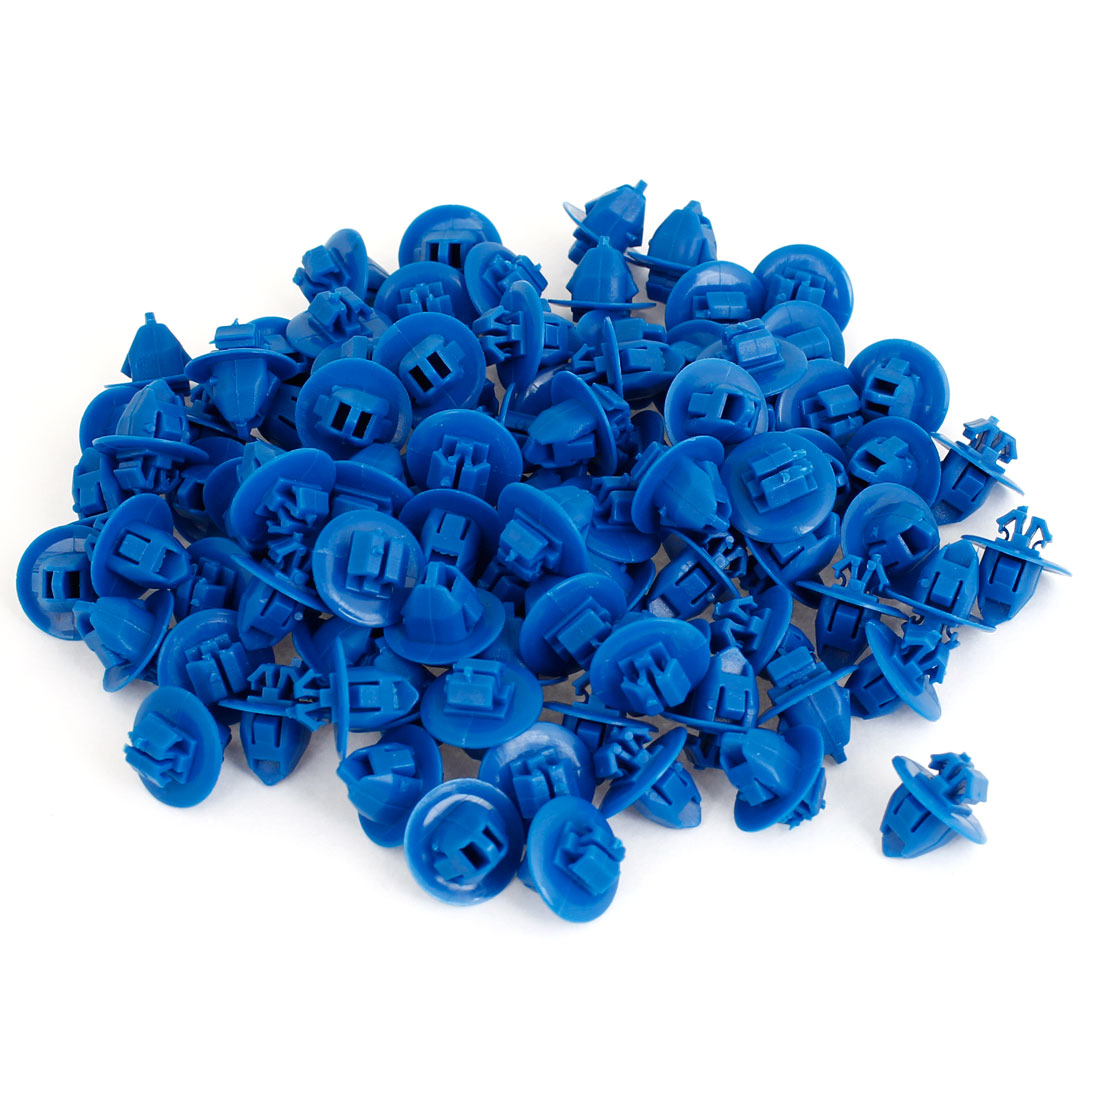 100 Pcs 10mm x 8.2mm Hole Plastic Rivet Door Push Fastener Blue for Toyota